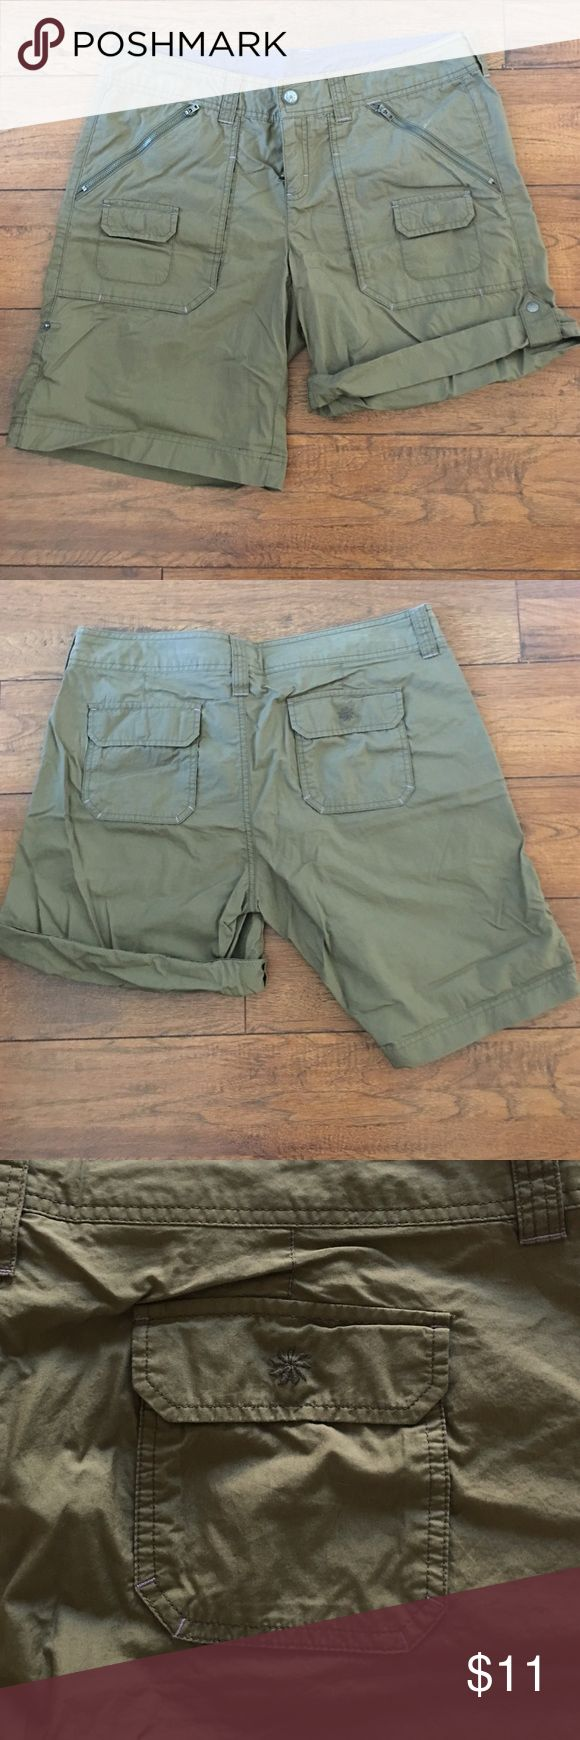 Athleta hiking shorts - NWOT Roll up shorts with plenty of pockets. Light weight and quick drying. Athleta Shorts